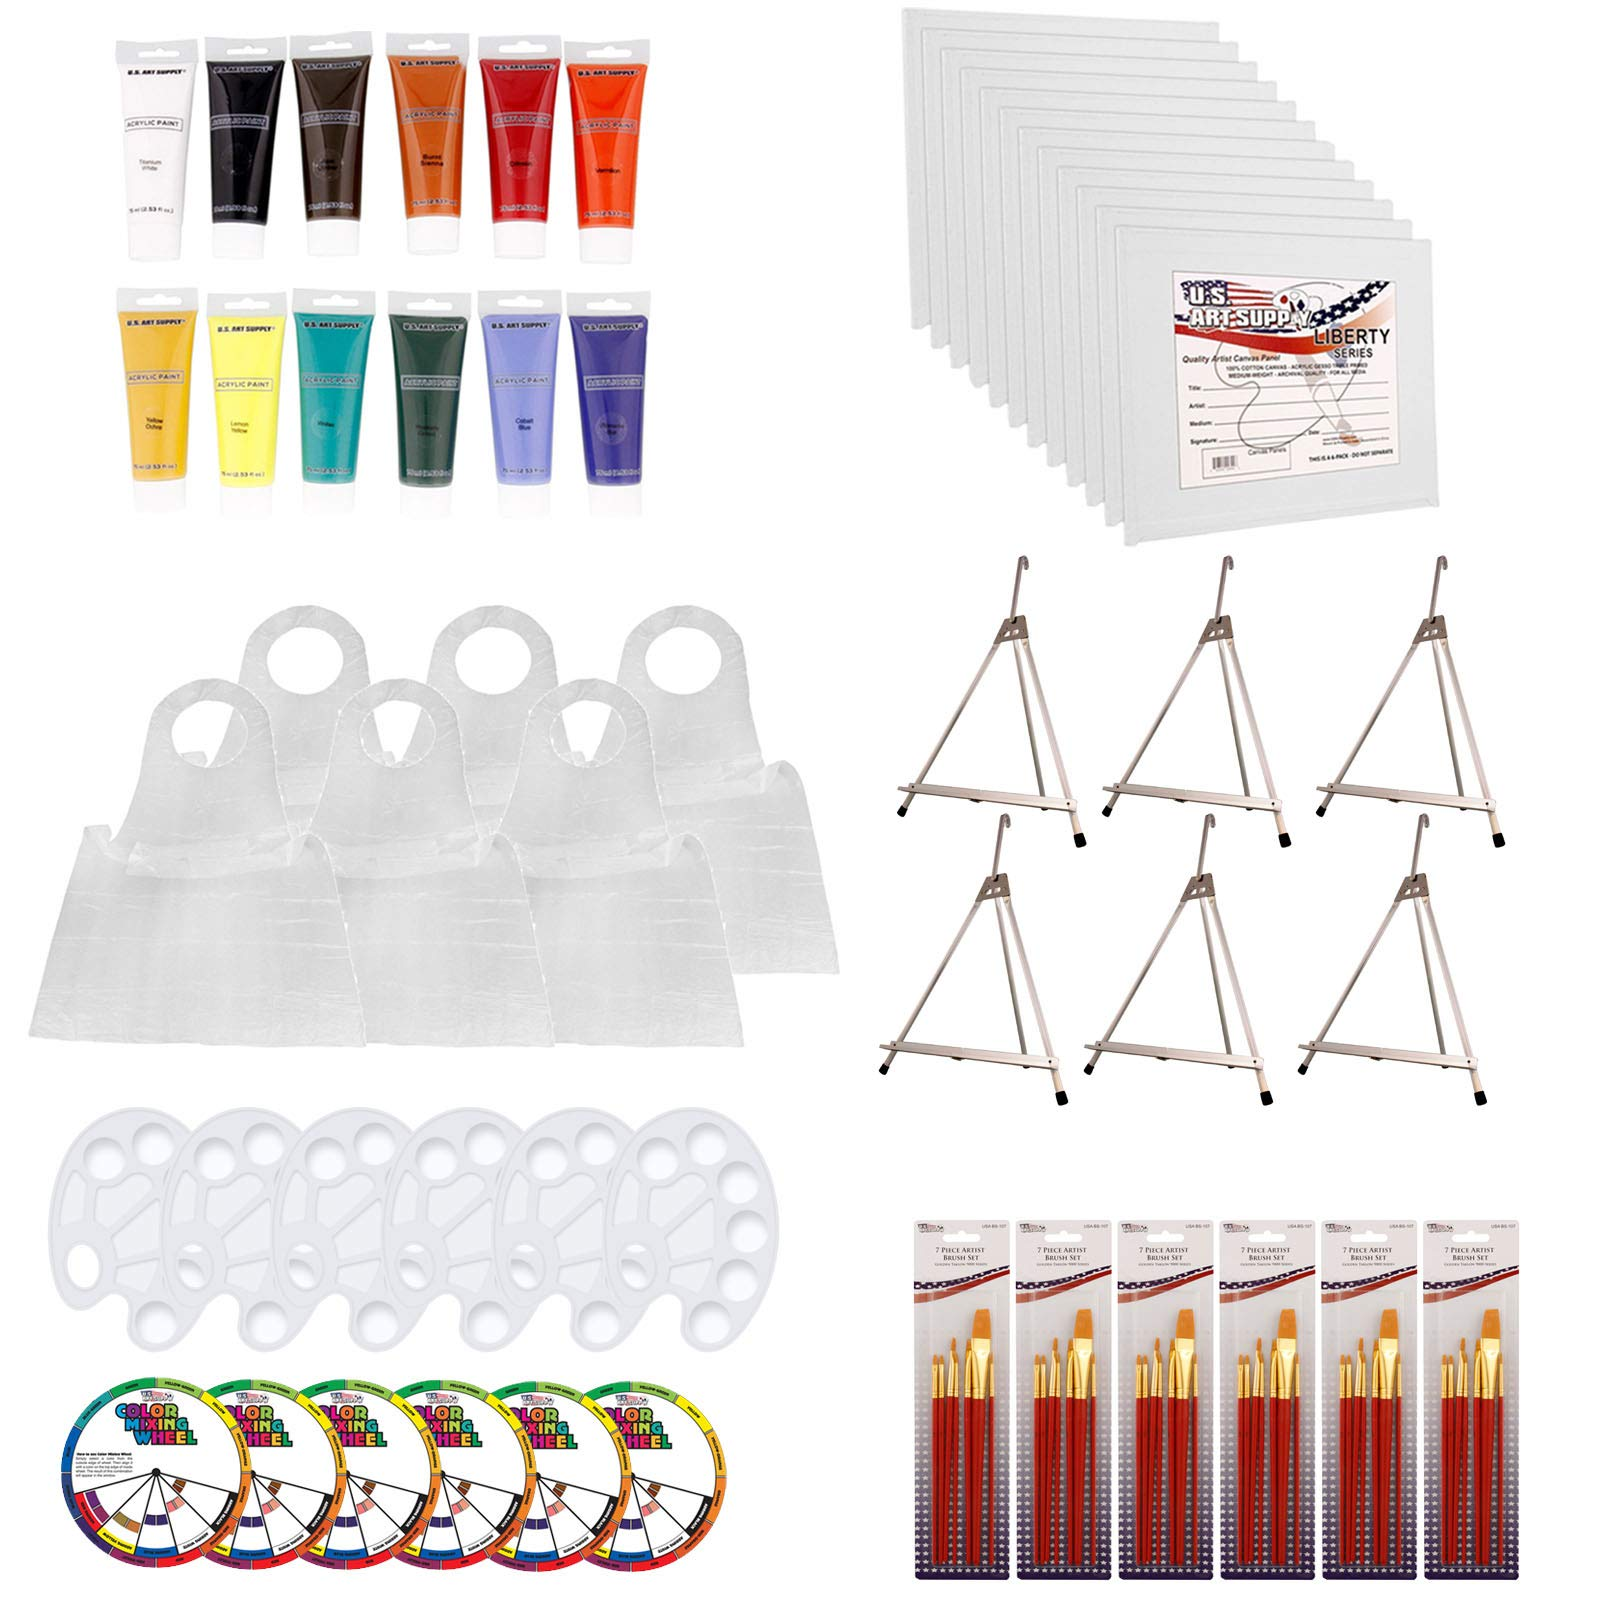 U.S. Art Supply Paint and Sip Art Party Painting Kit - 6 Easels, 12 Paint Tube Set, 12 Canvas Panels, 6 Brush Sets & 6 Disposable Poly Aprons by U.S. Art Supply